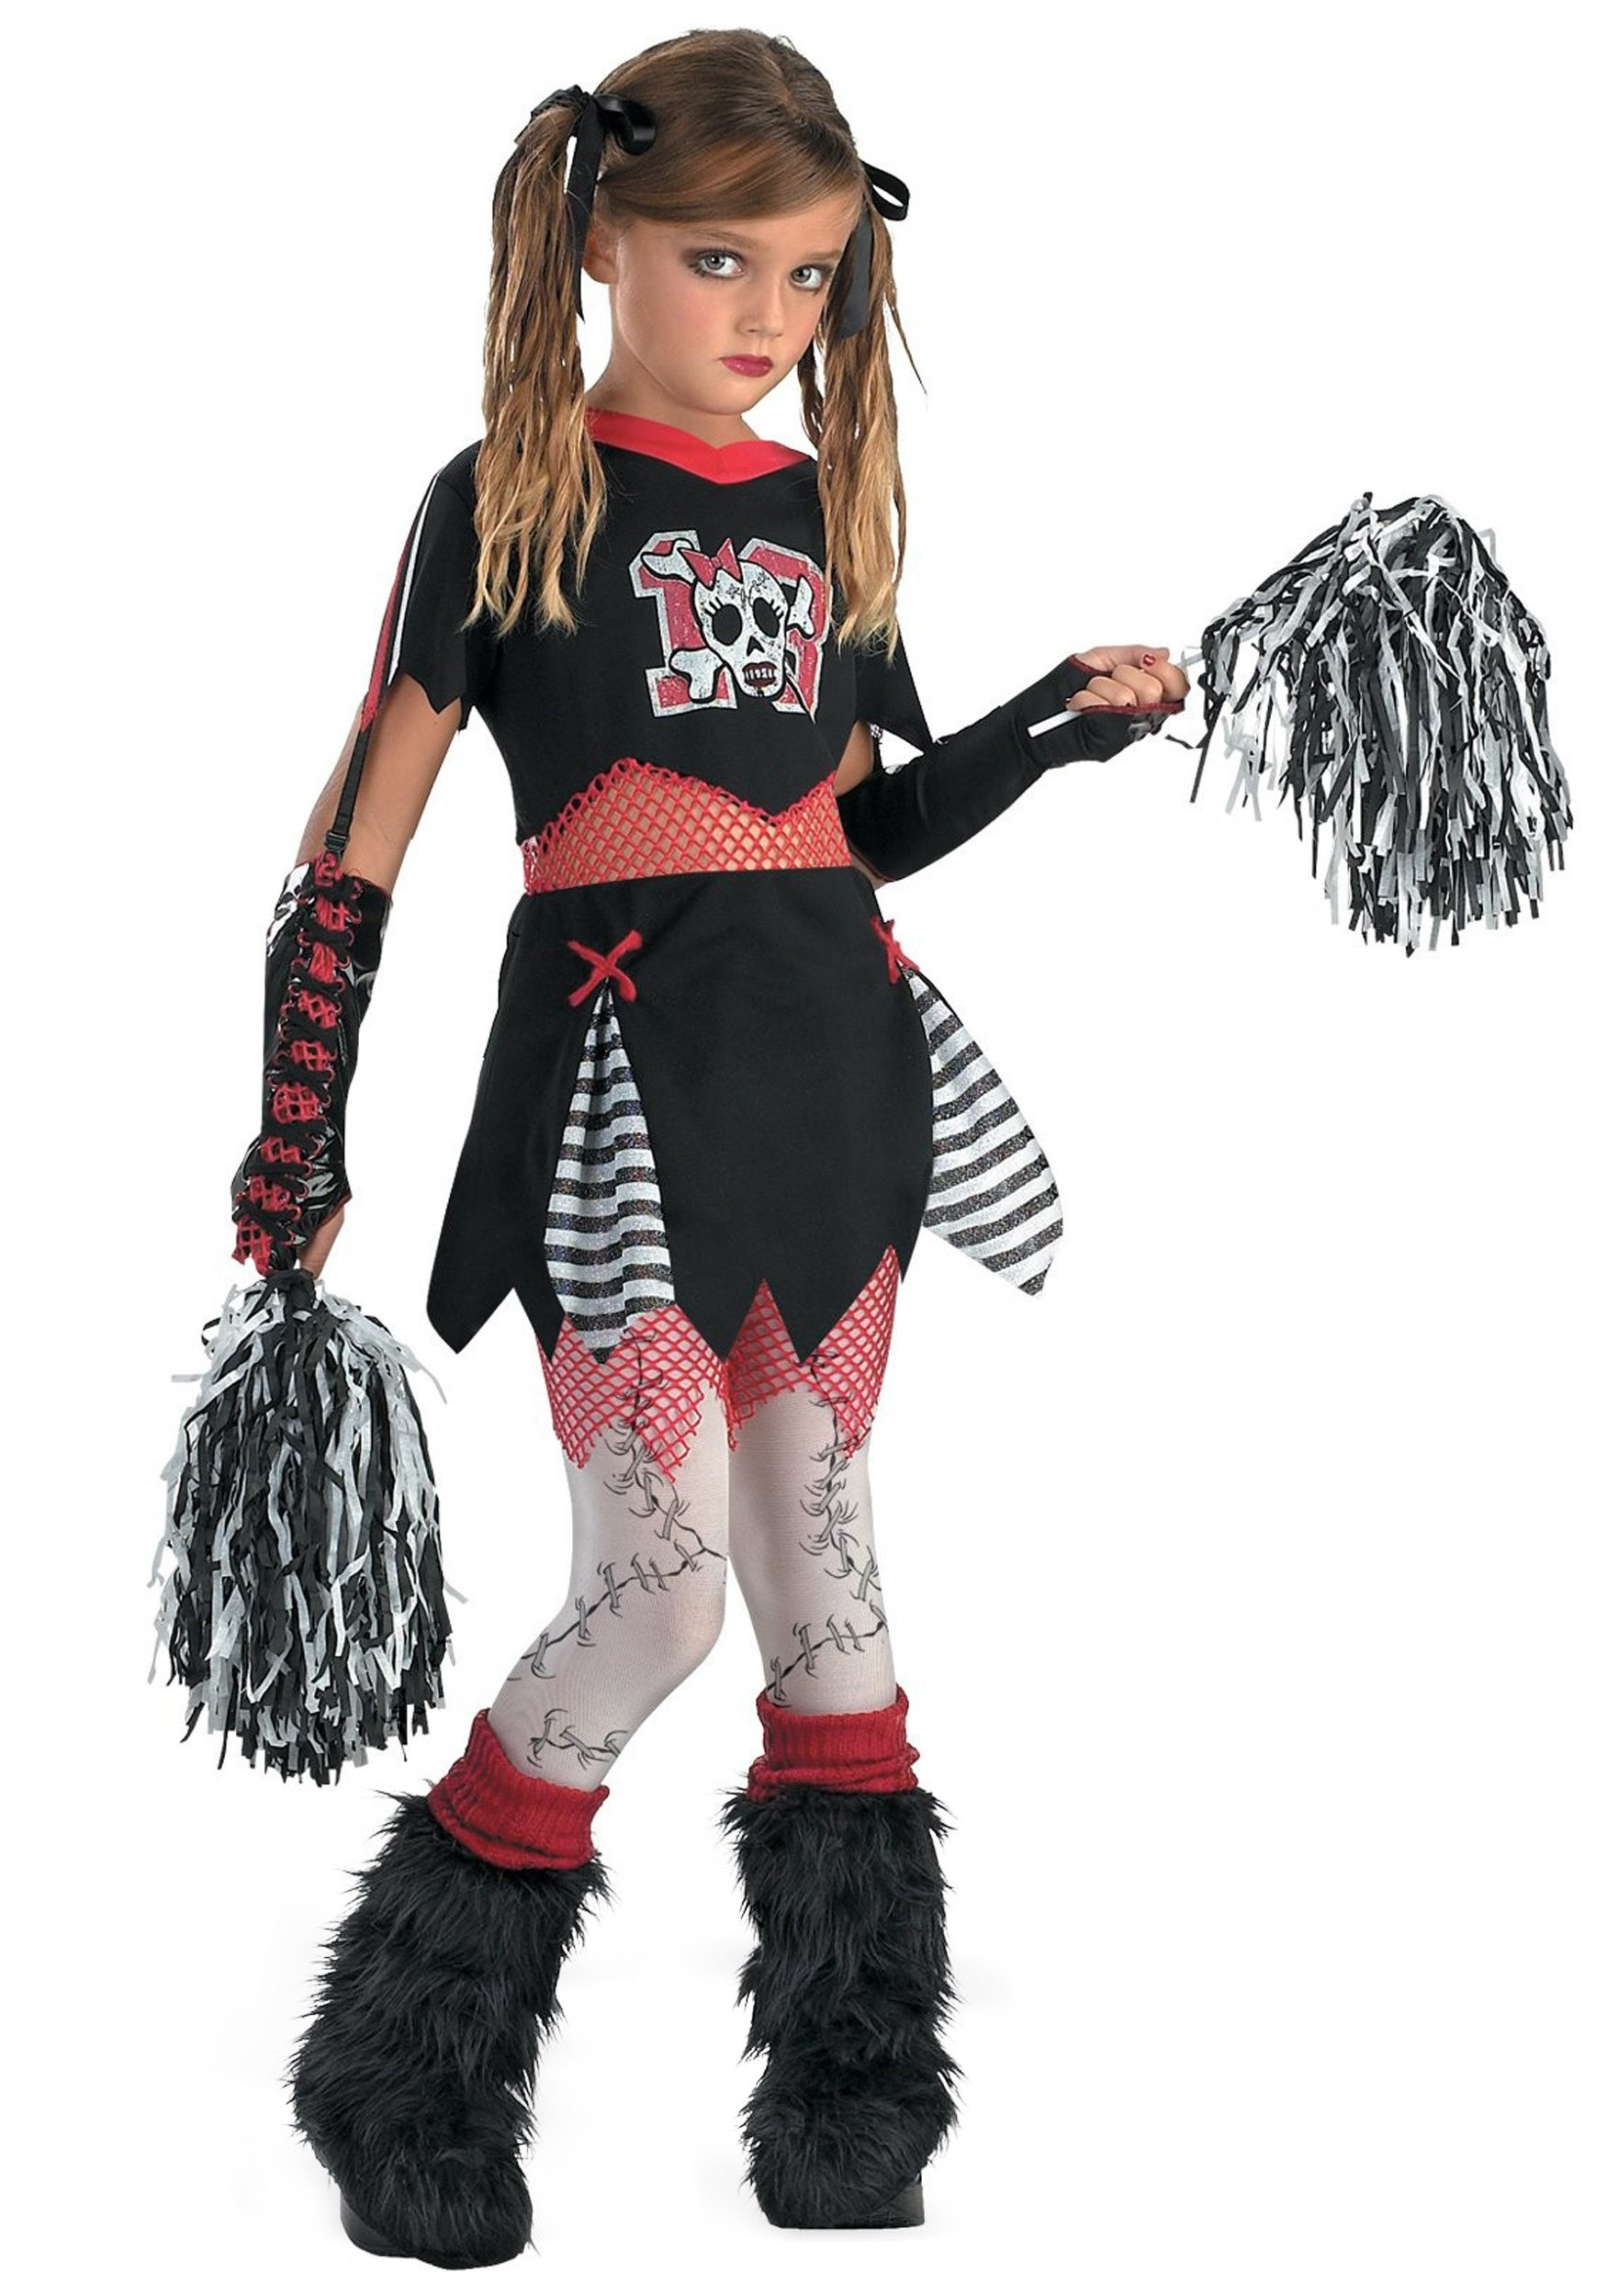 Gothic Cheerleader Girls Costume  sc 1 st  Fun.com & Gothic Cheerleader Costume for Girls